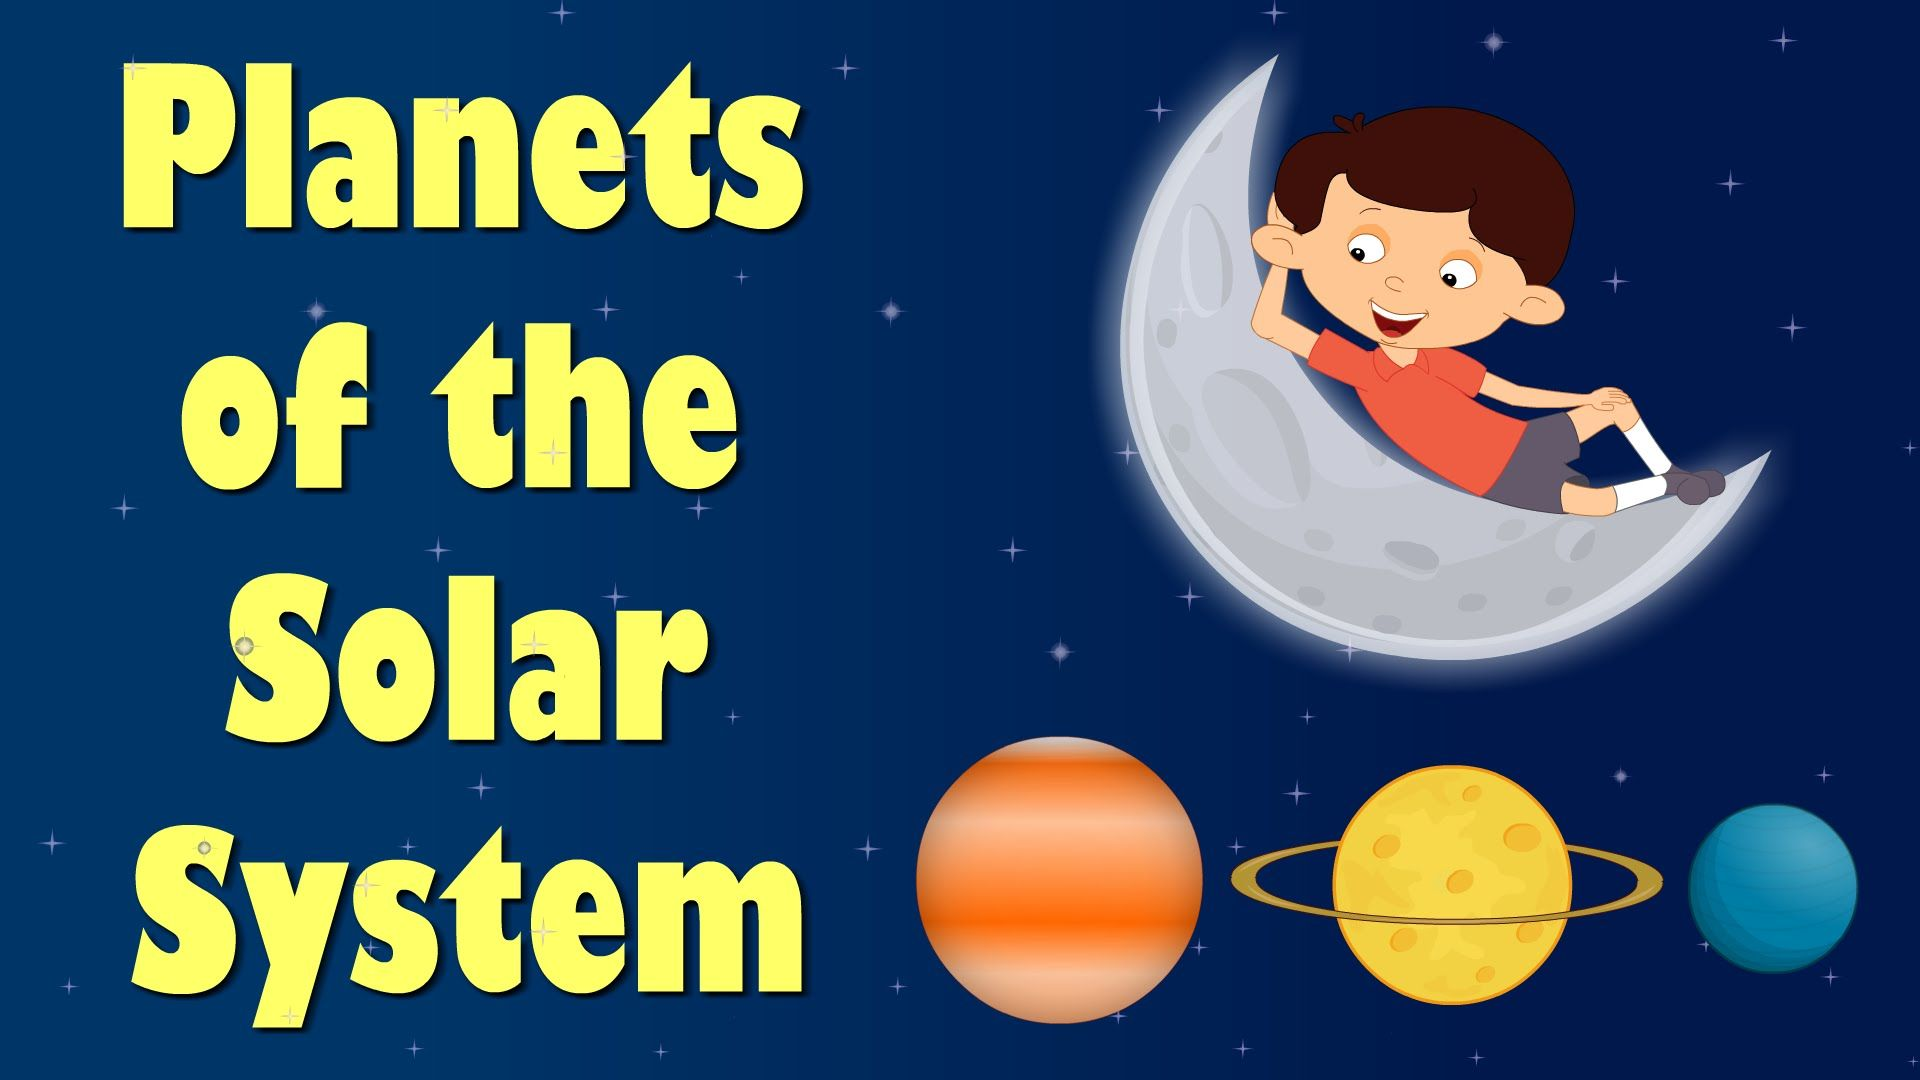 You Will Learn About Planets Of The Solar System In This